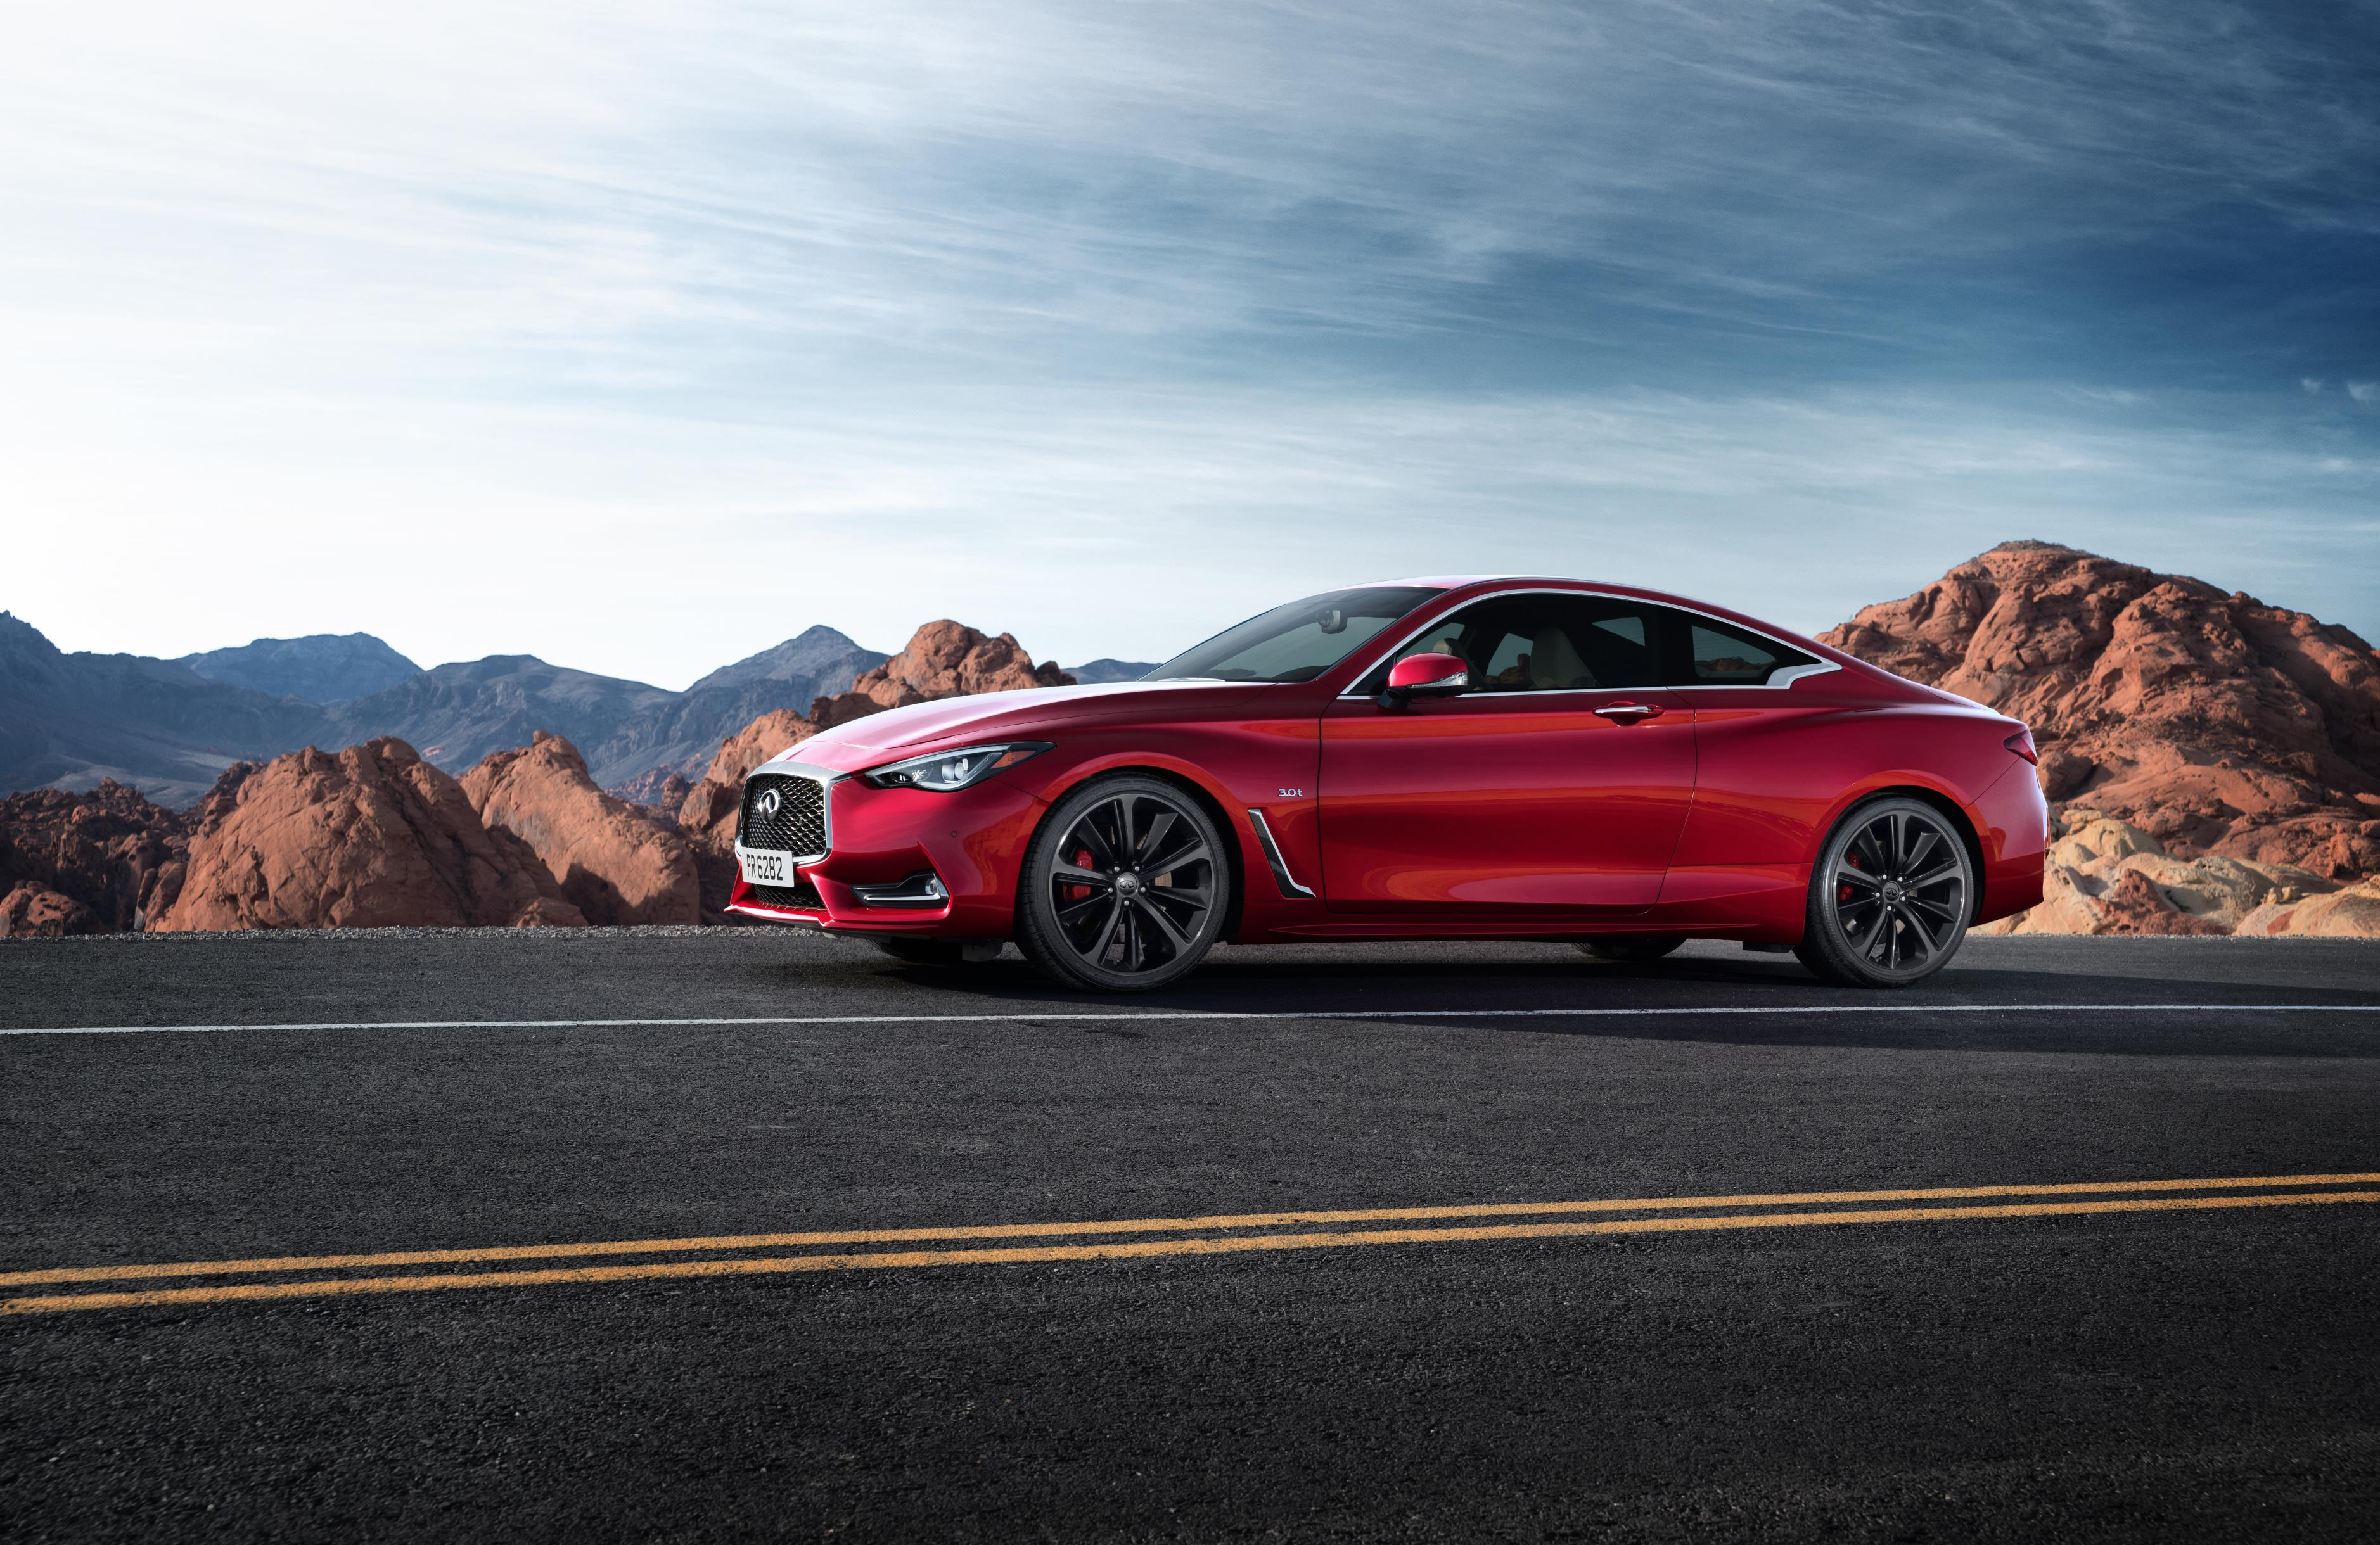 2017 infiniti q60 sports coupe priced from 38 950 autoevolution. Black Bedroom Furniture Sets. Home Design Ideas